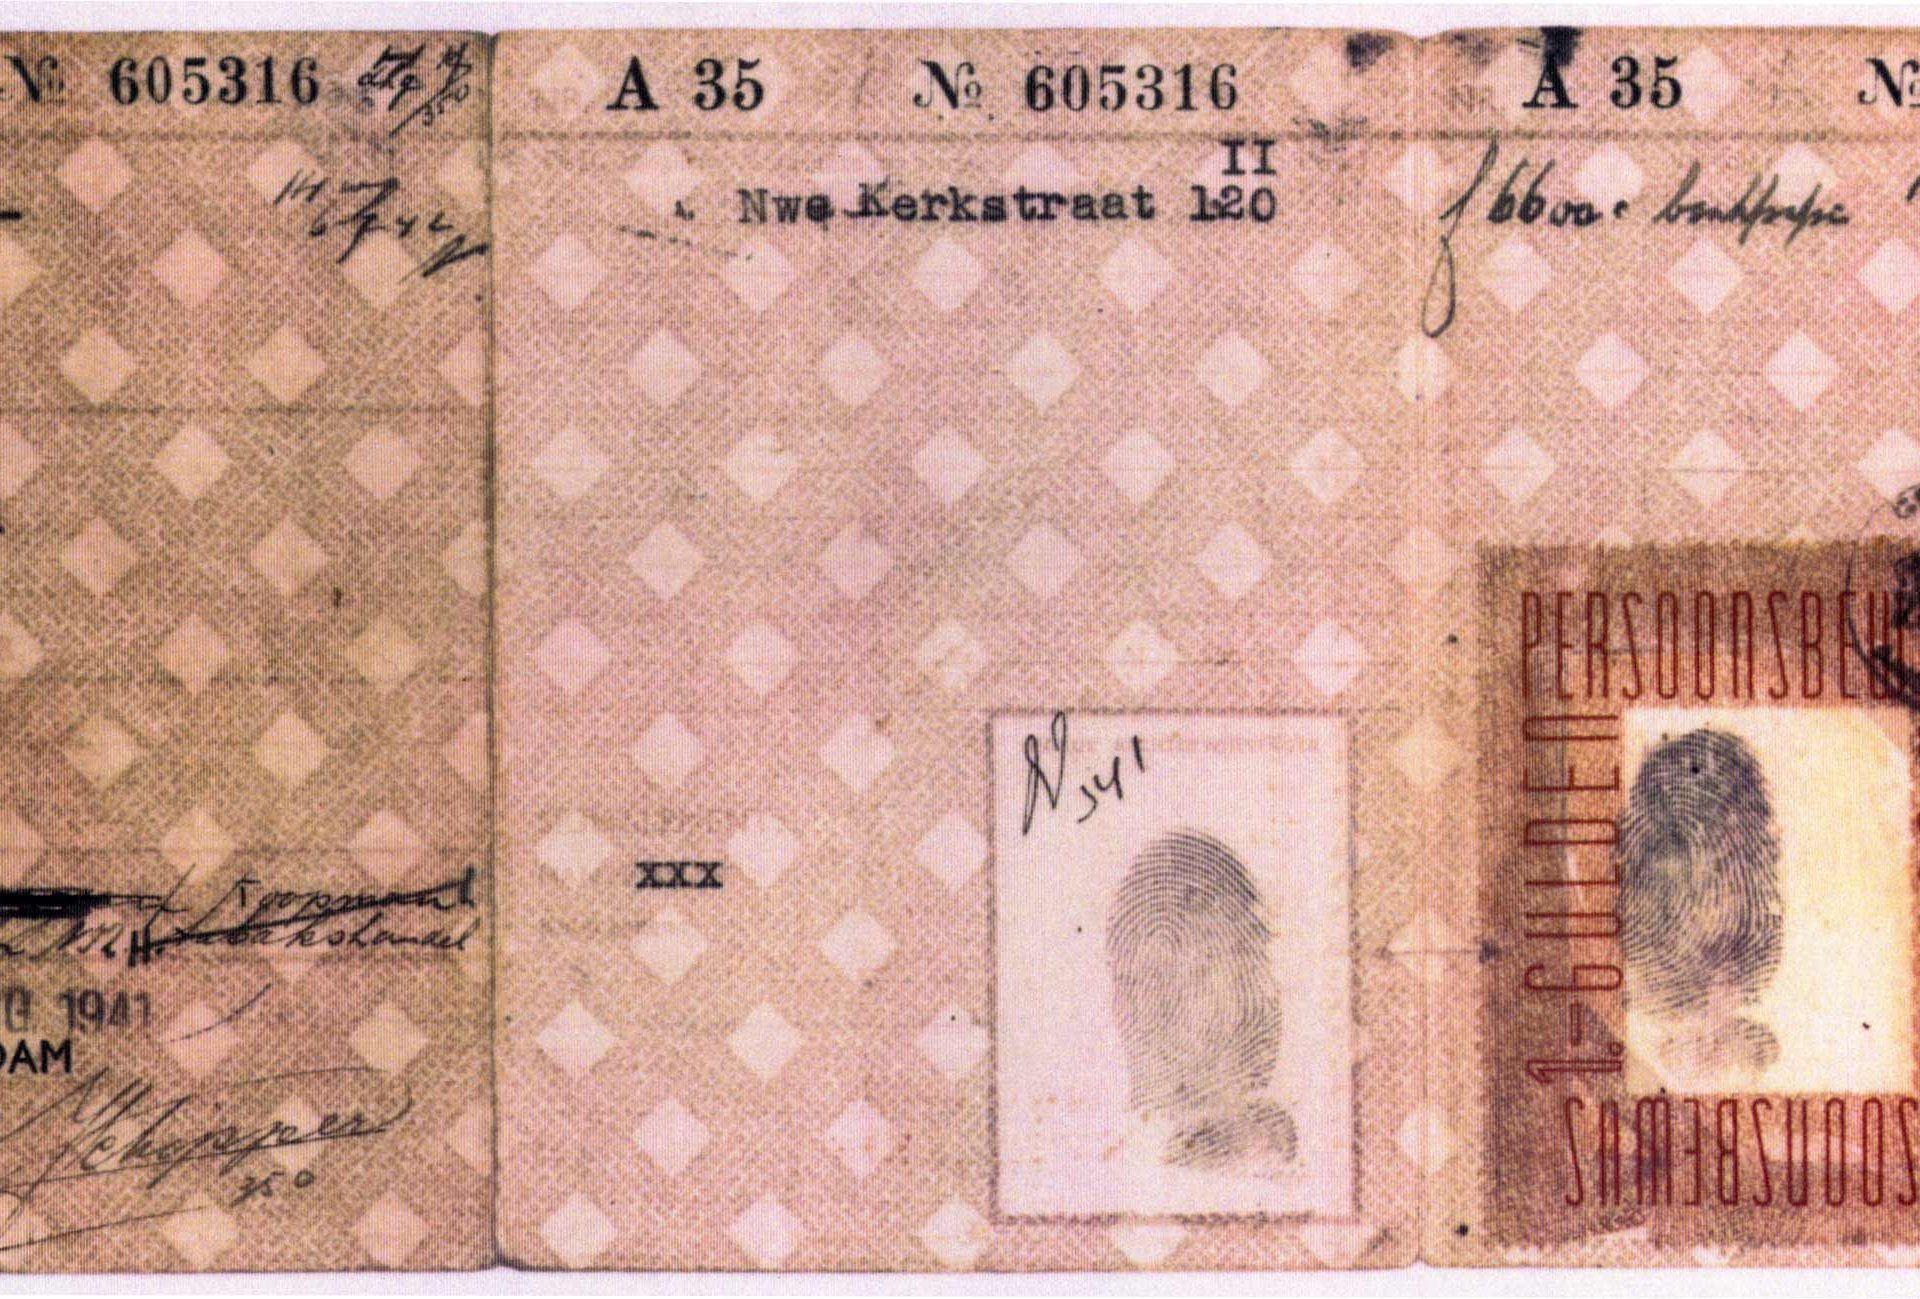 Identity card of Samuel Schryver